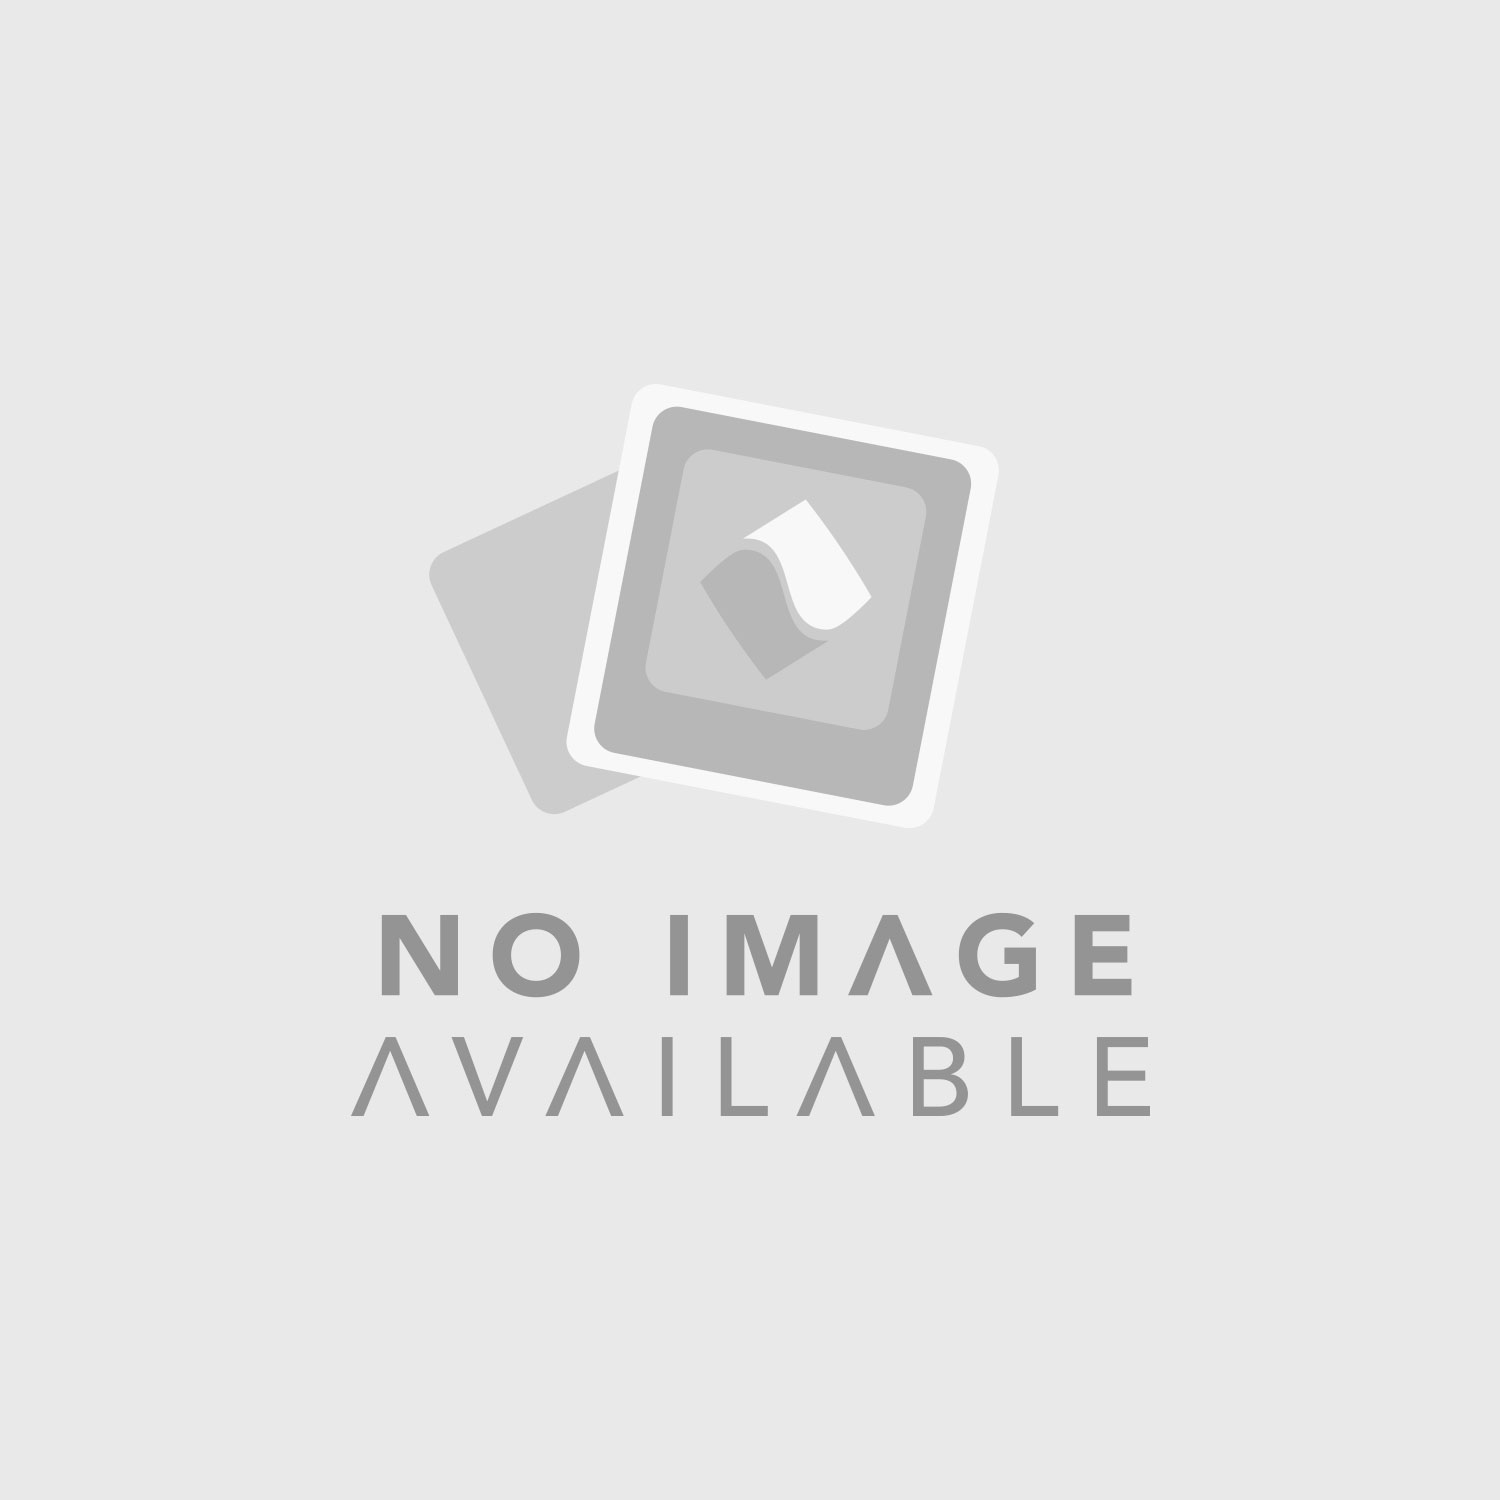 Rycote Overcovers Fur Discs (White, 6 Pack)